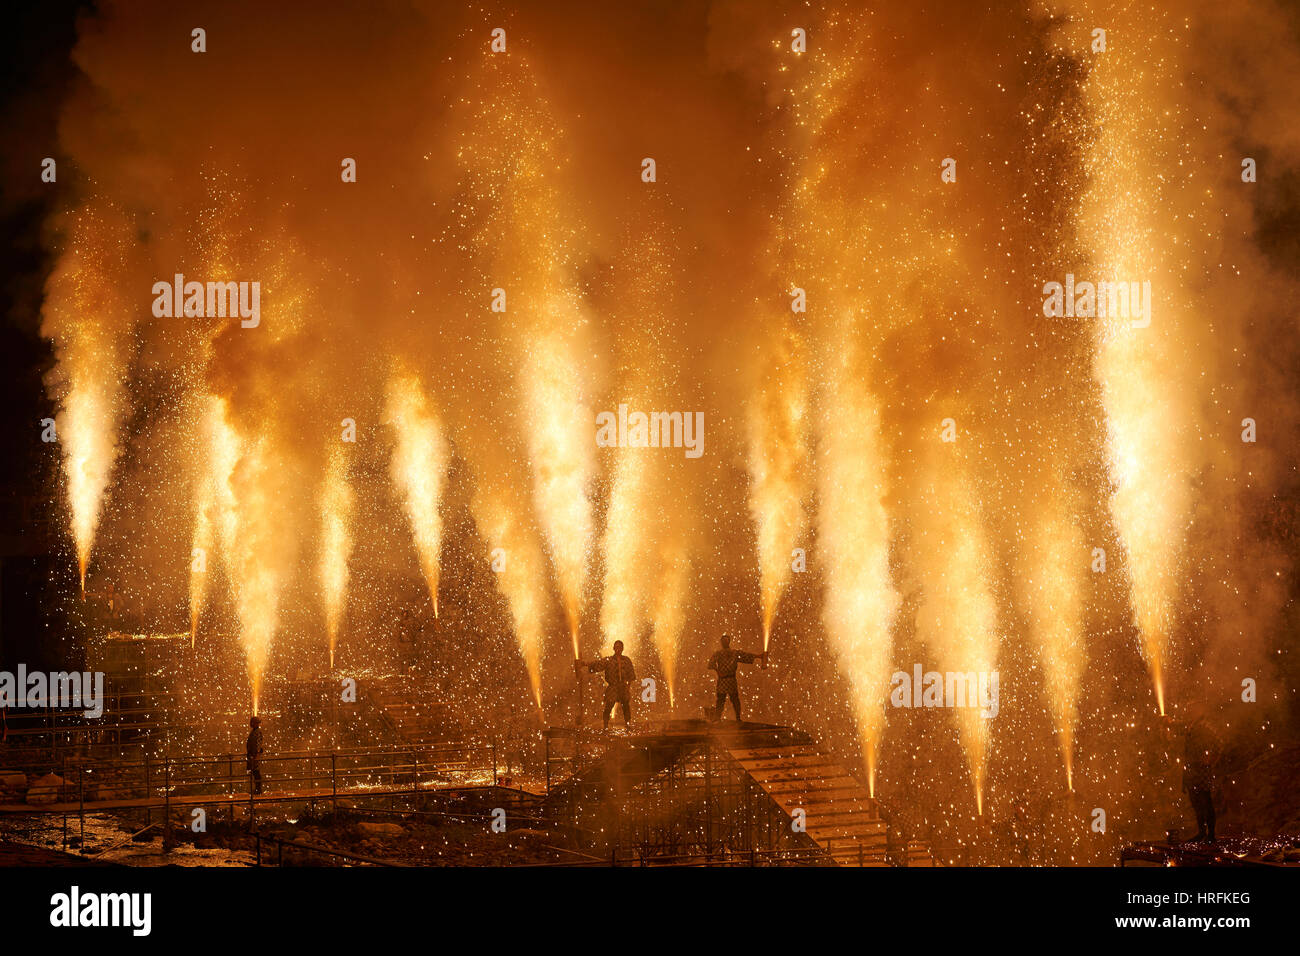 Fireworks in Takayama, Gifu Prefecture, Japan (free public event) - in traditional Japanese style, deployed from Stock Photo